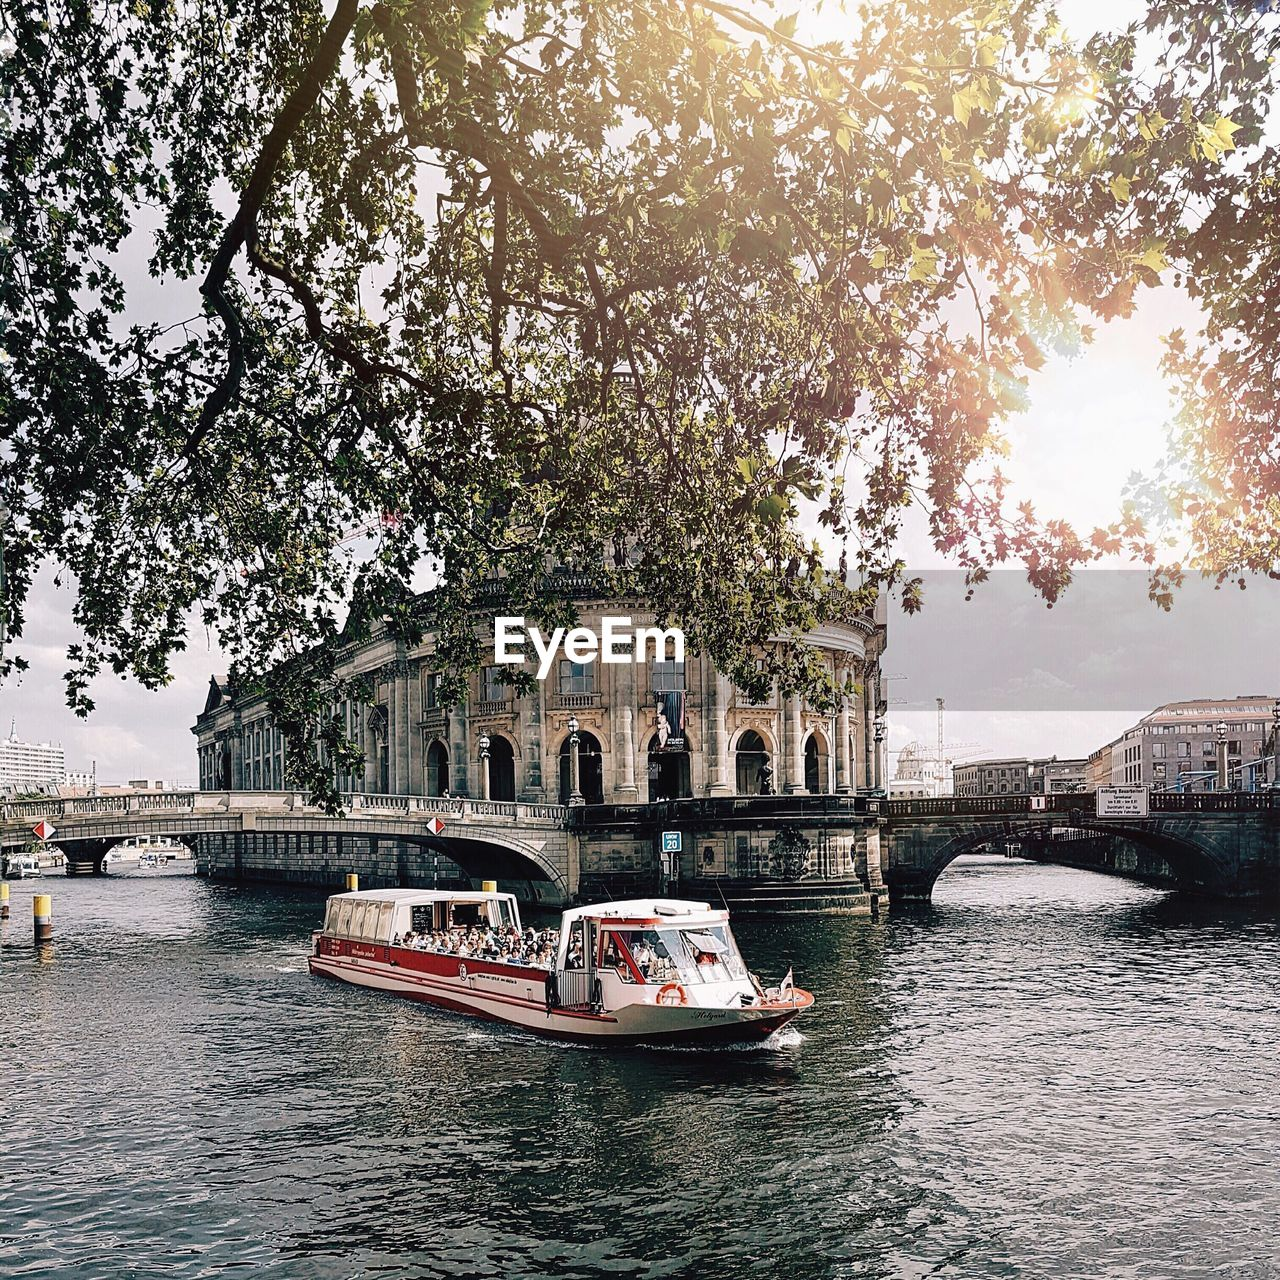 nautical vessel, transportation, tree, built structure, architecture, mode of transport, water, day, building exterior, river, outdoors, waterfront, bridge - man made structure, nature, large group of people, travel destinations, sky, city, people